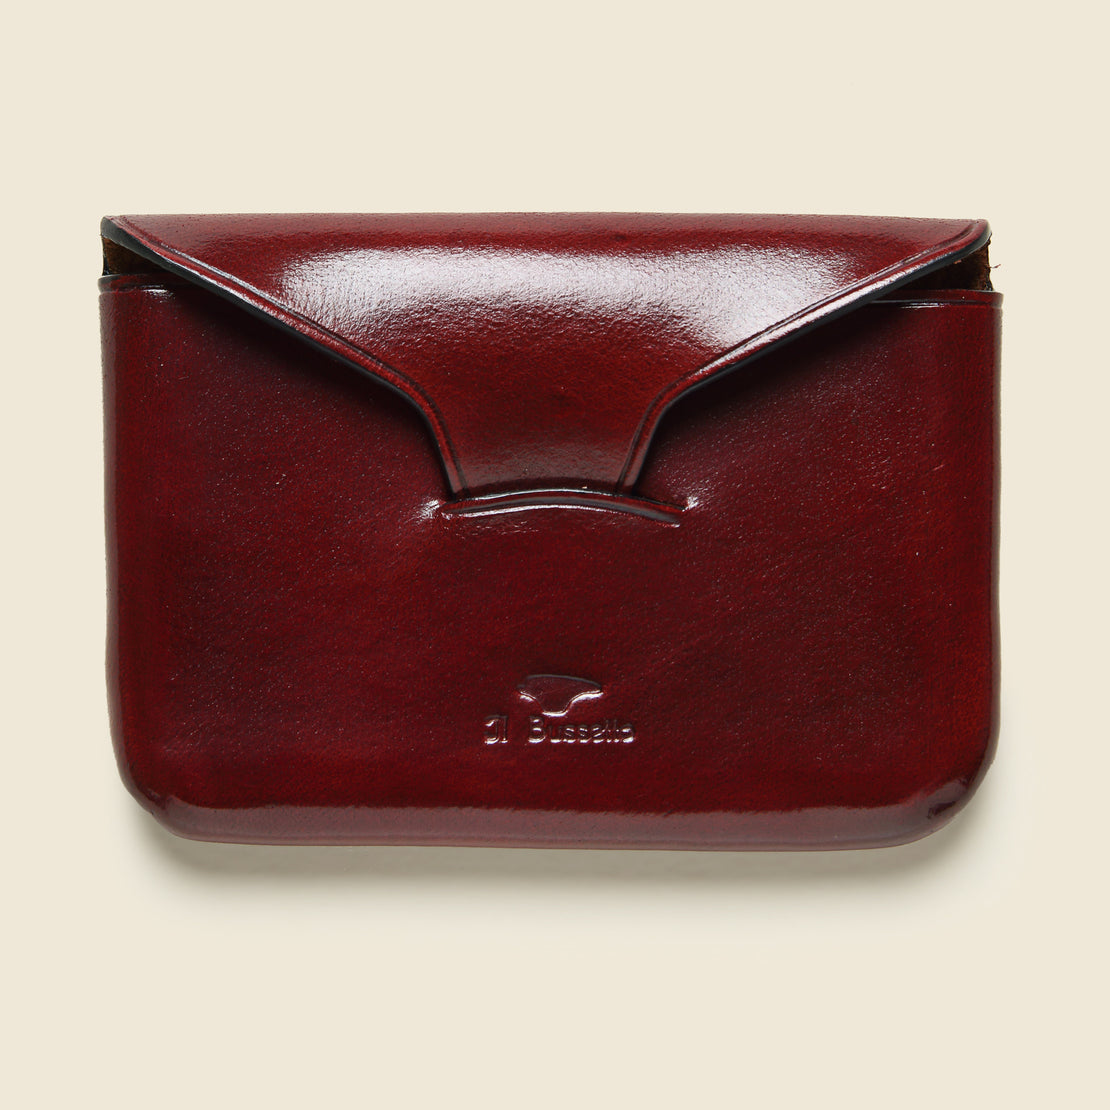 Il Bussetto Business Card Holder - Cherry